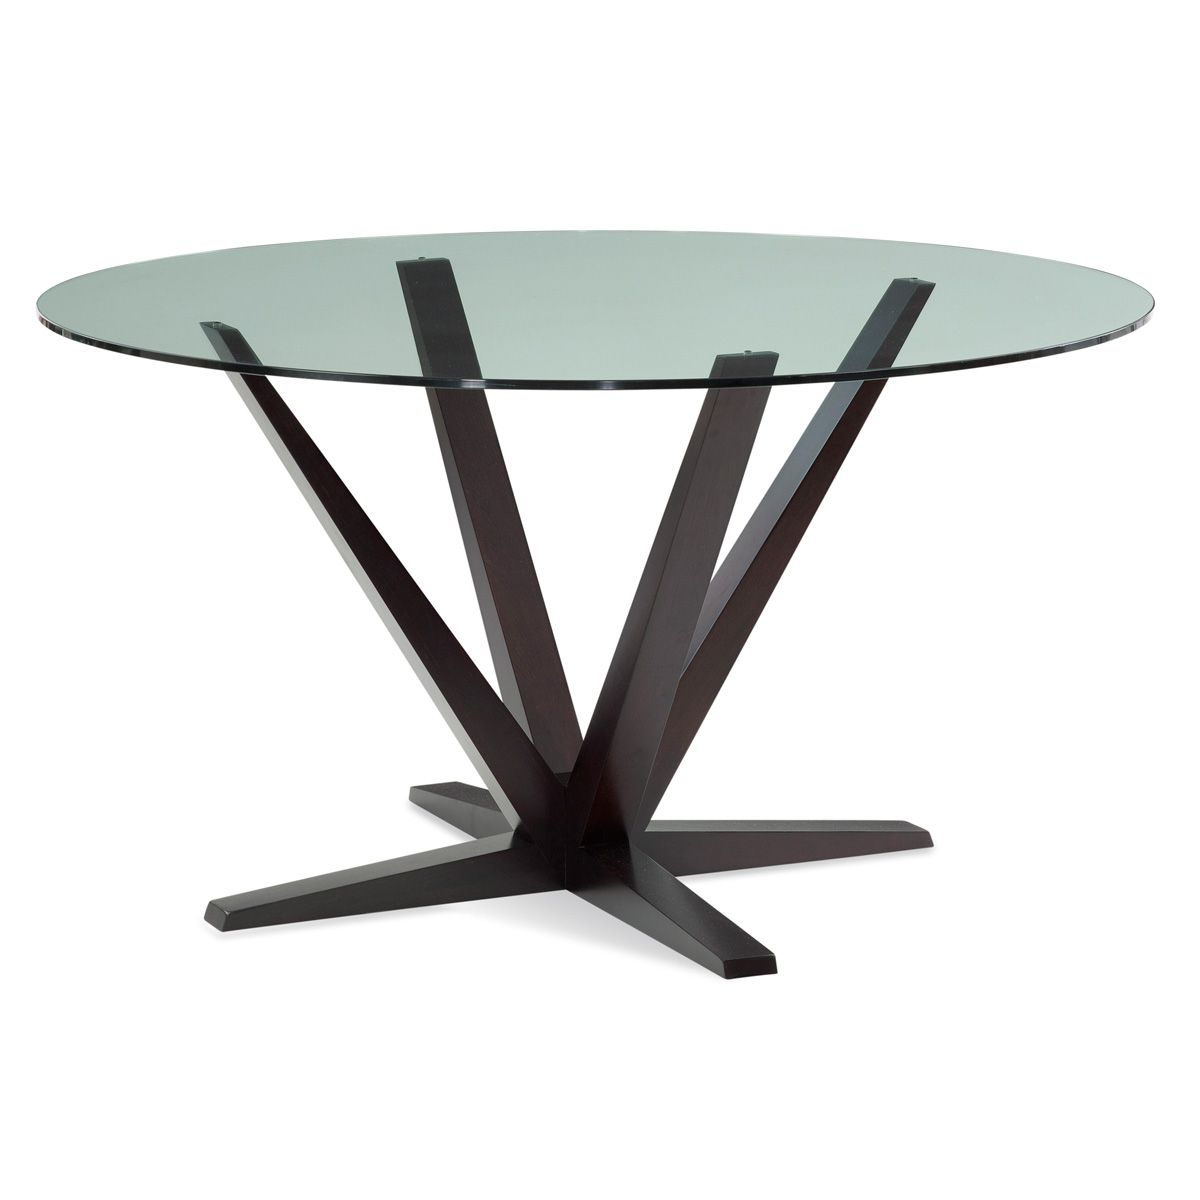 Aura Round Glass Top Dining Table Part Of Saloom Furniture S